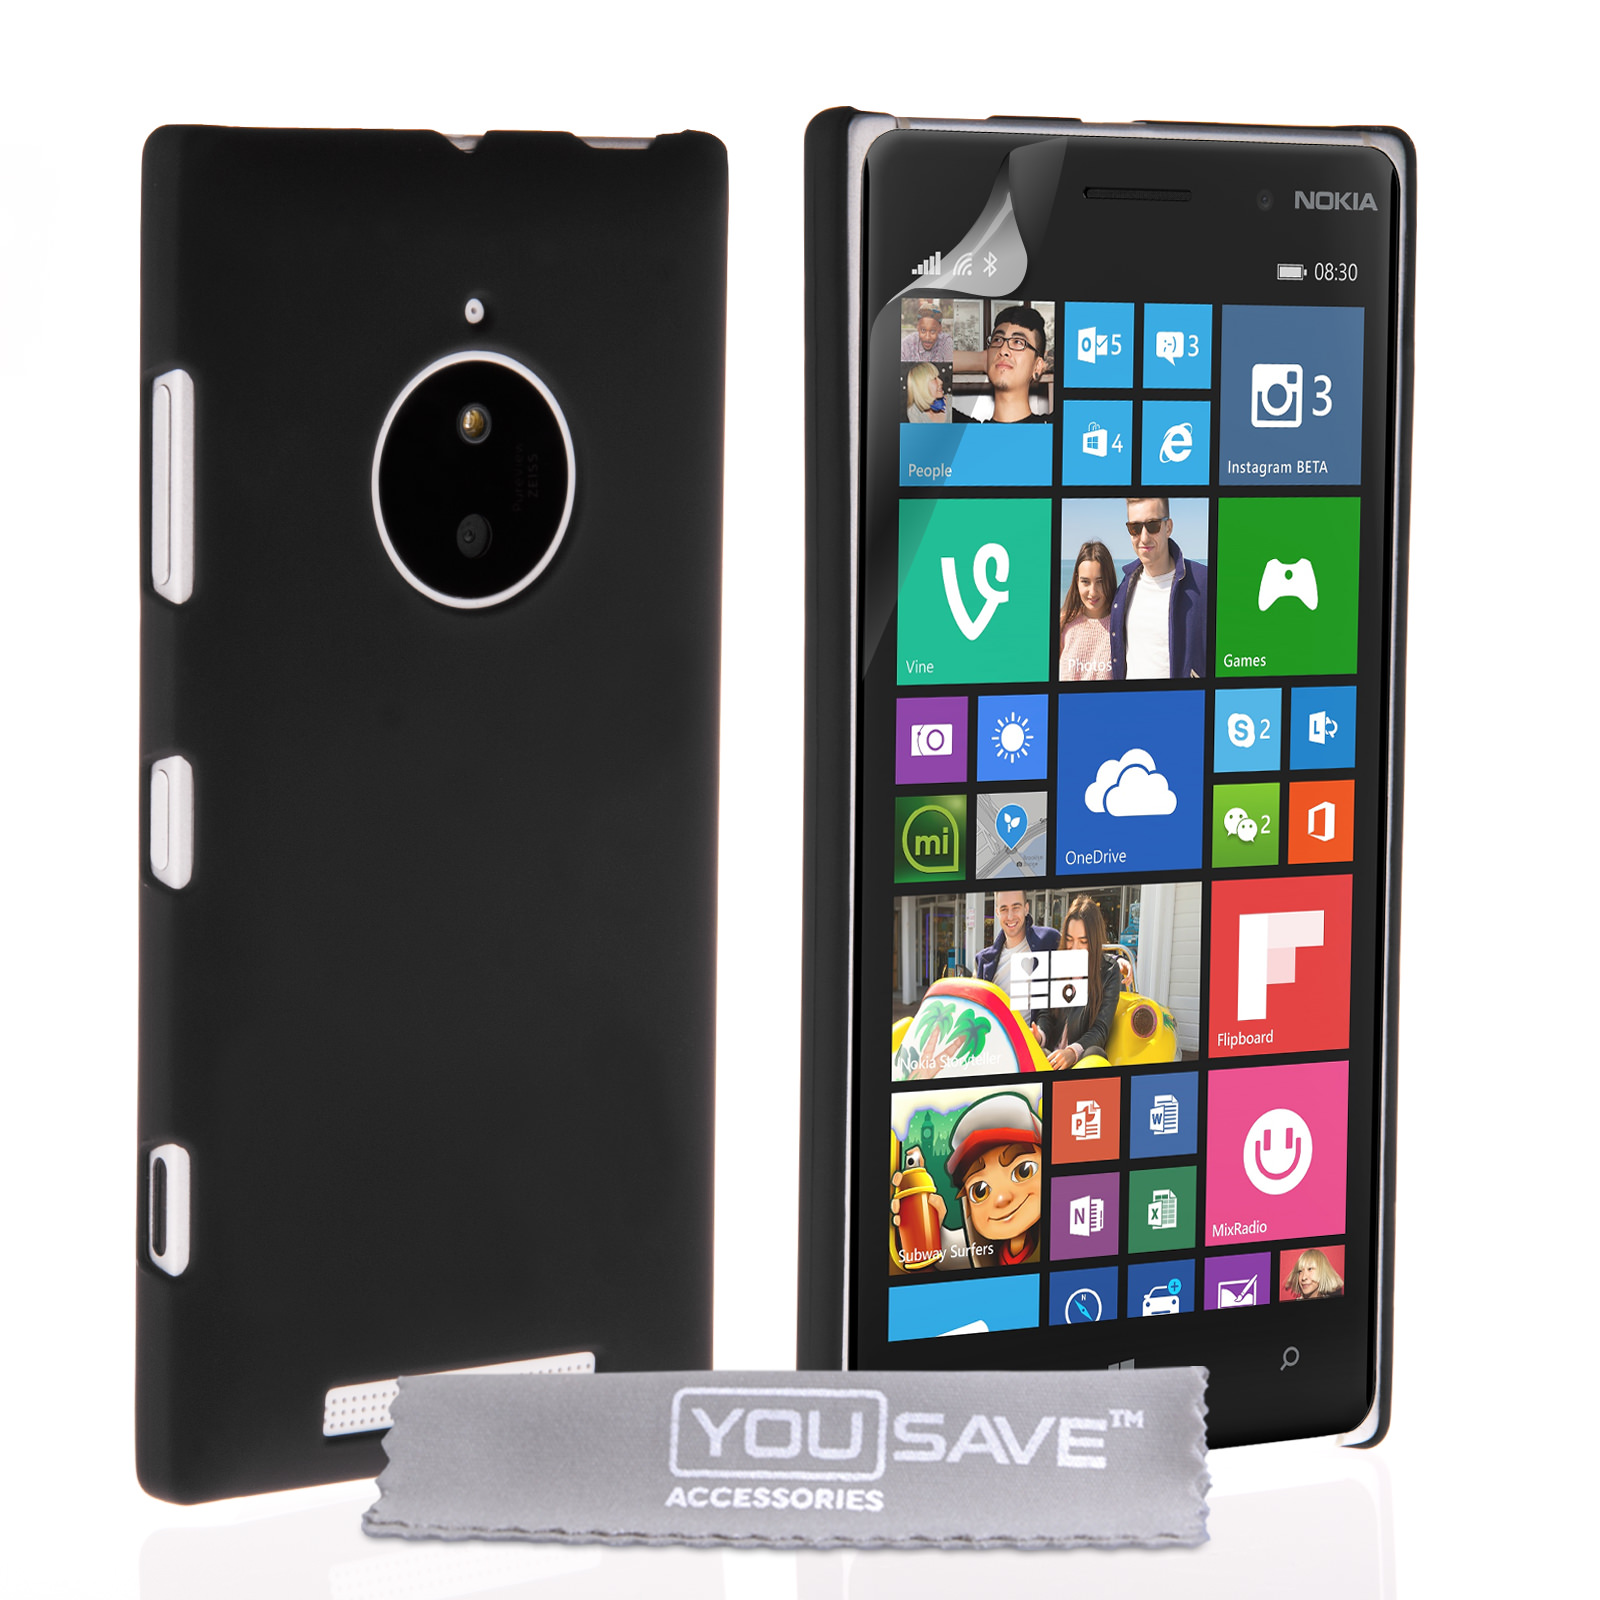 yousave accessories nokia lumia 830 hard hybrid case black. Black Bedroom Furniture Sets. Home Design Ideas